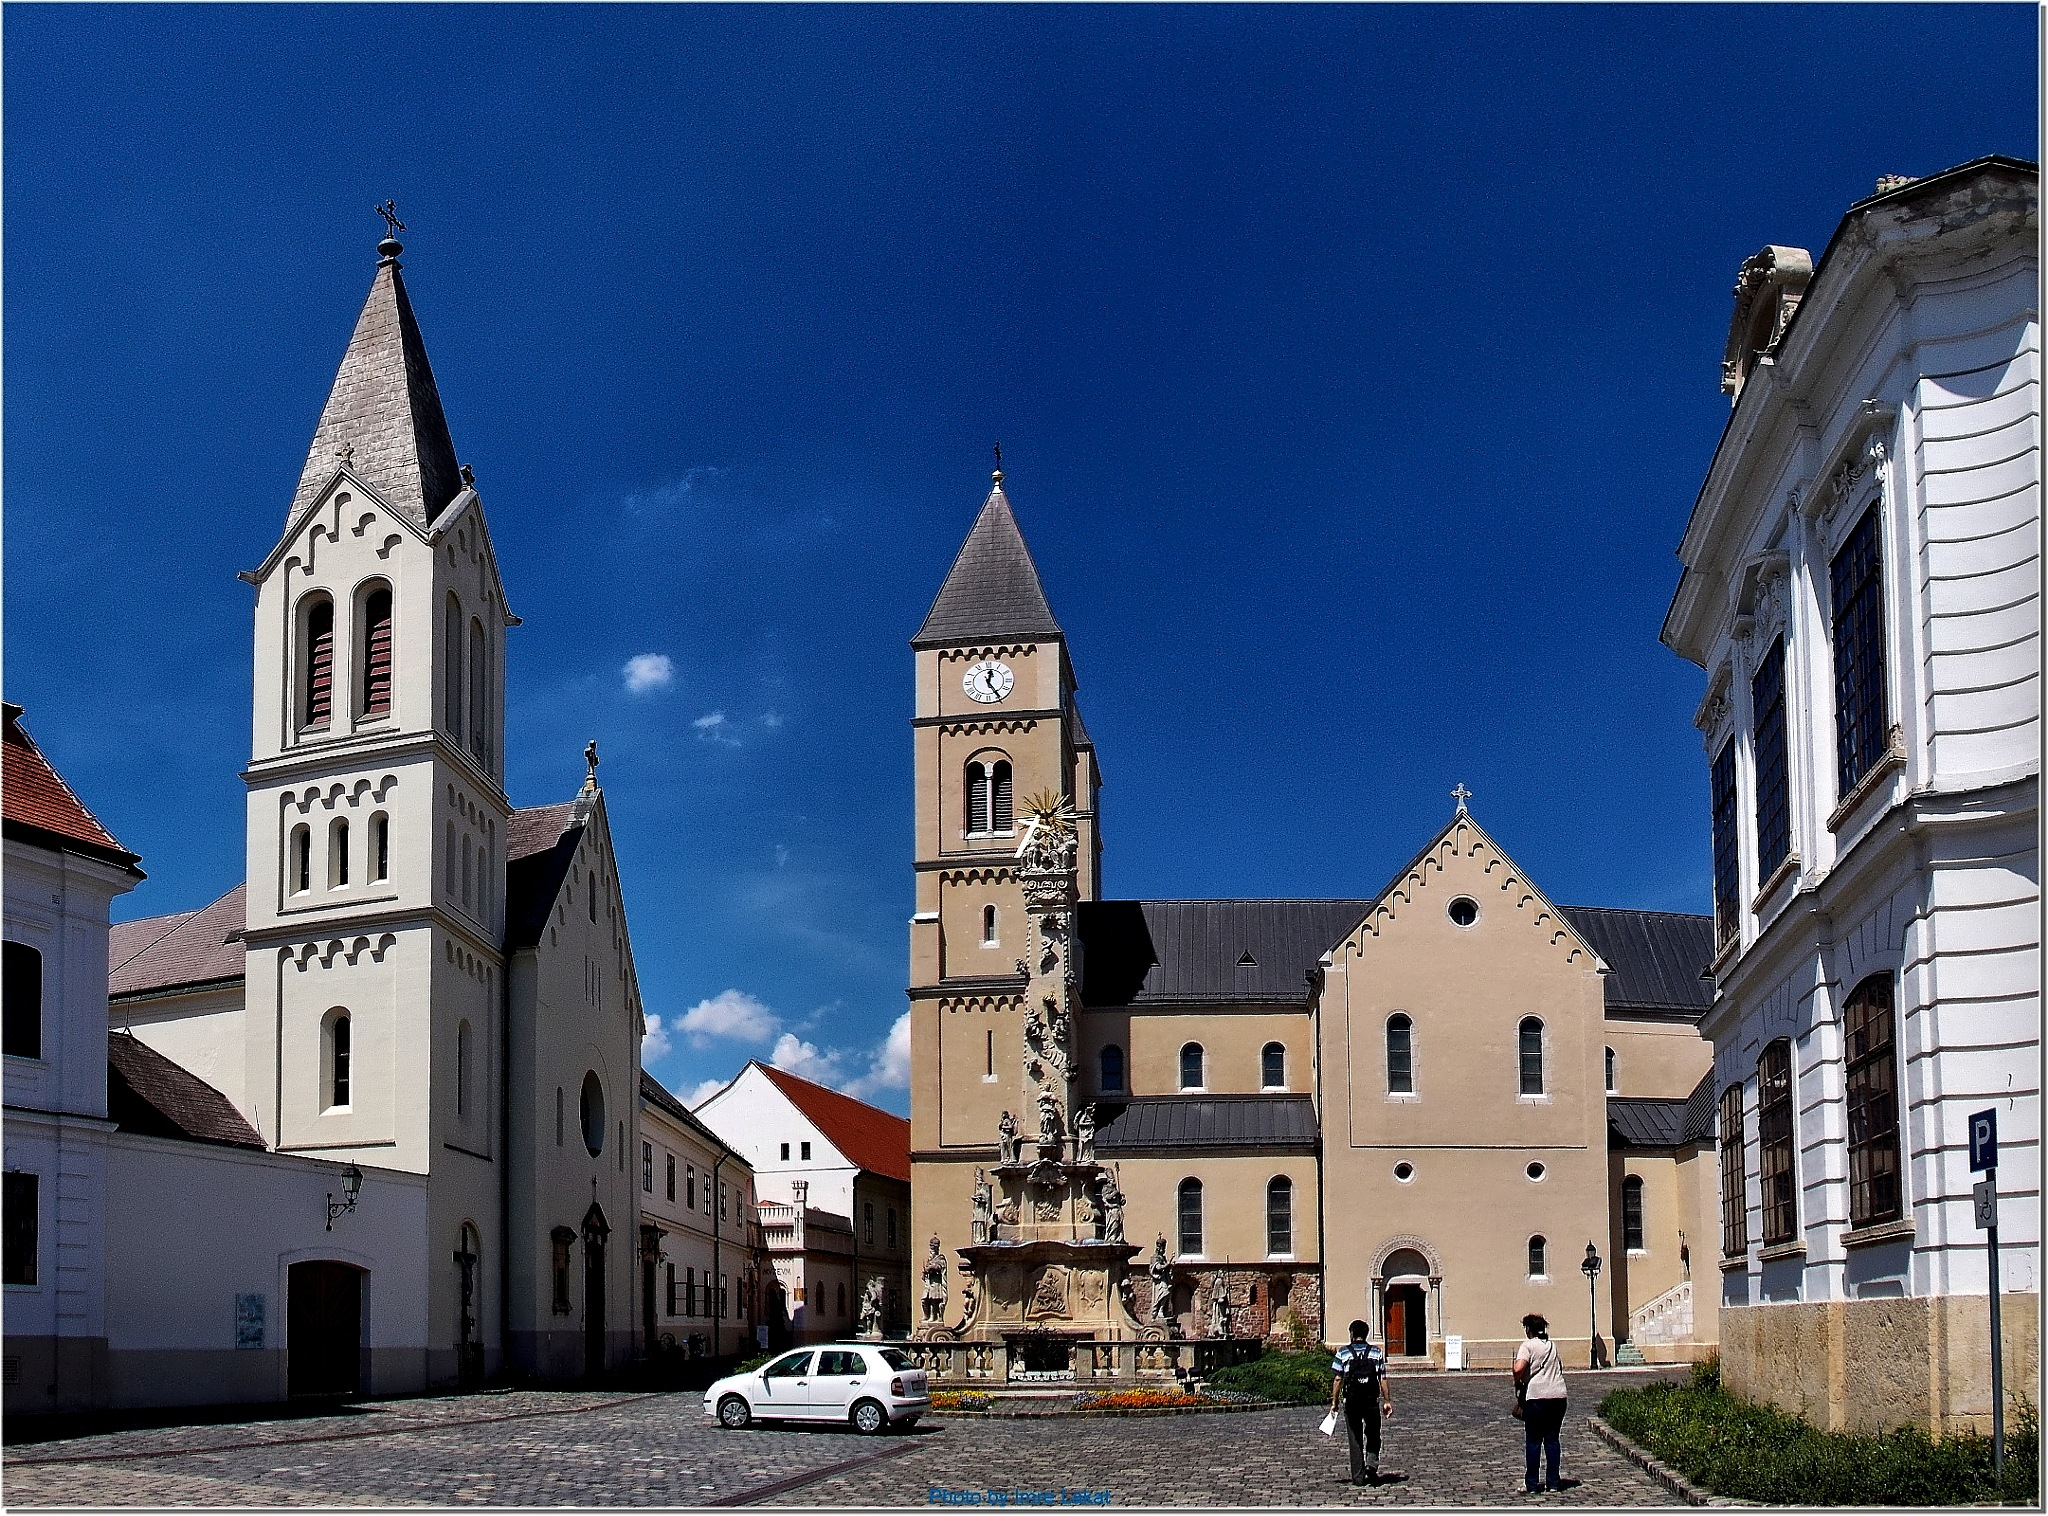 Trinity statue and St. Michael's Cathedral Veszprém by Imre Lakat